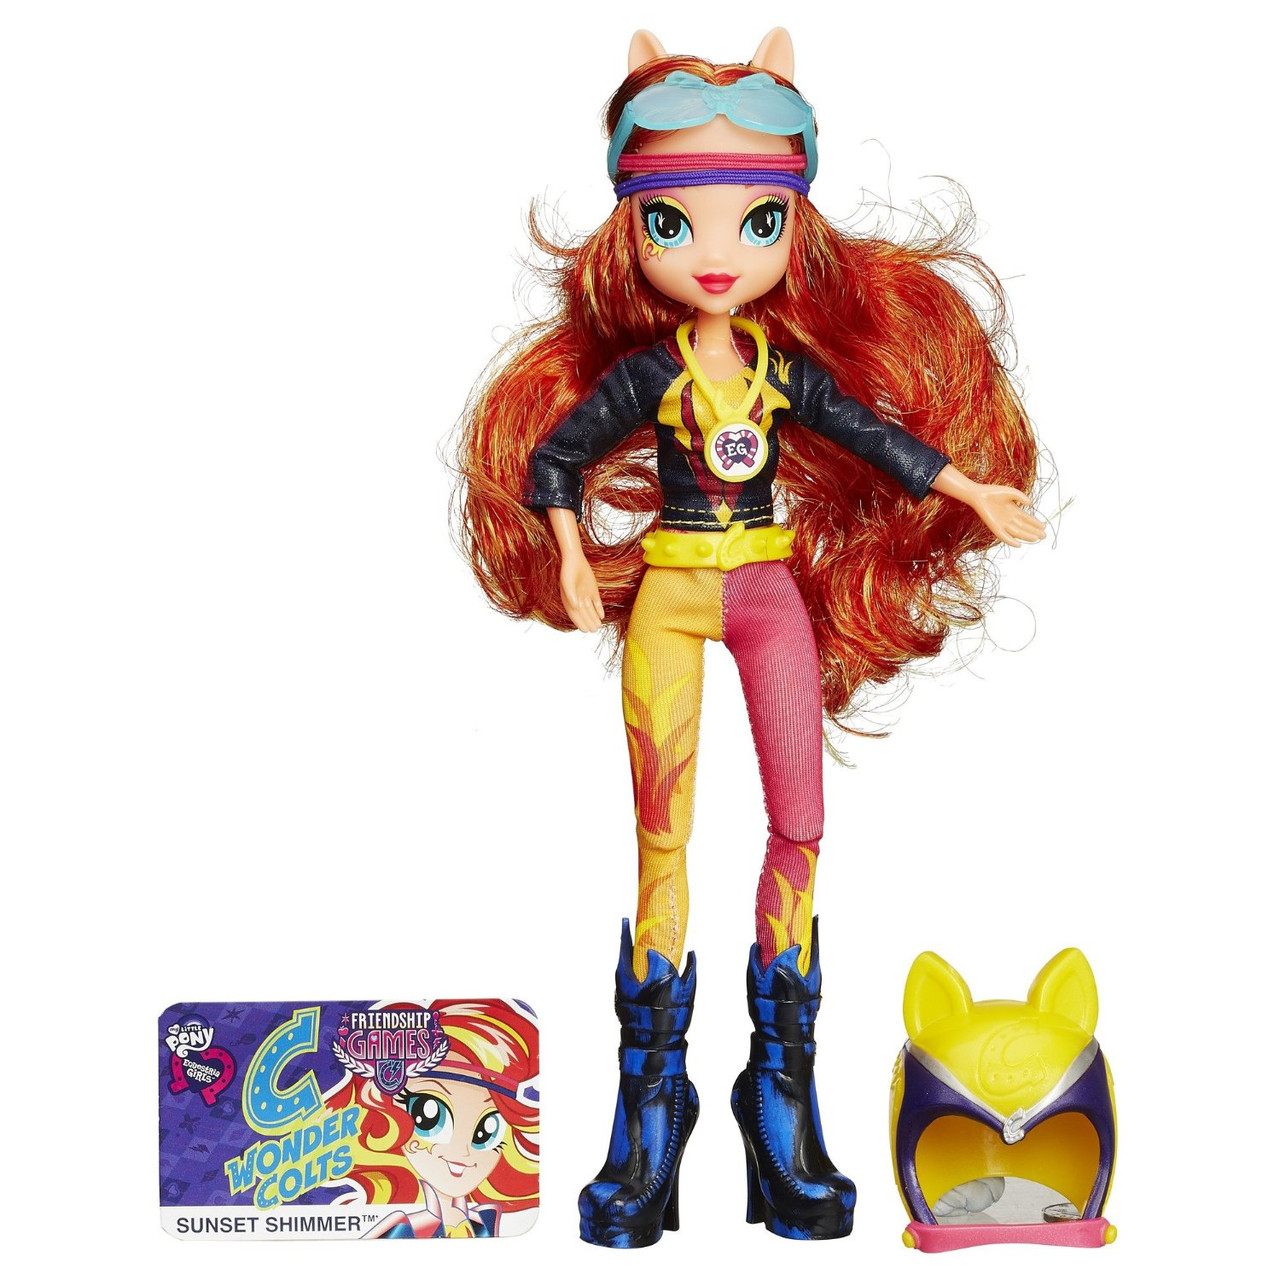 Май Литл Пони Сансет Шиммер Мотокросс My Little Pony Equestria Girls Sunset Shimmer Sporty Style Motocross